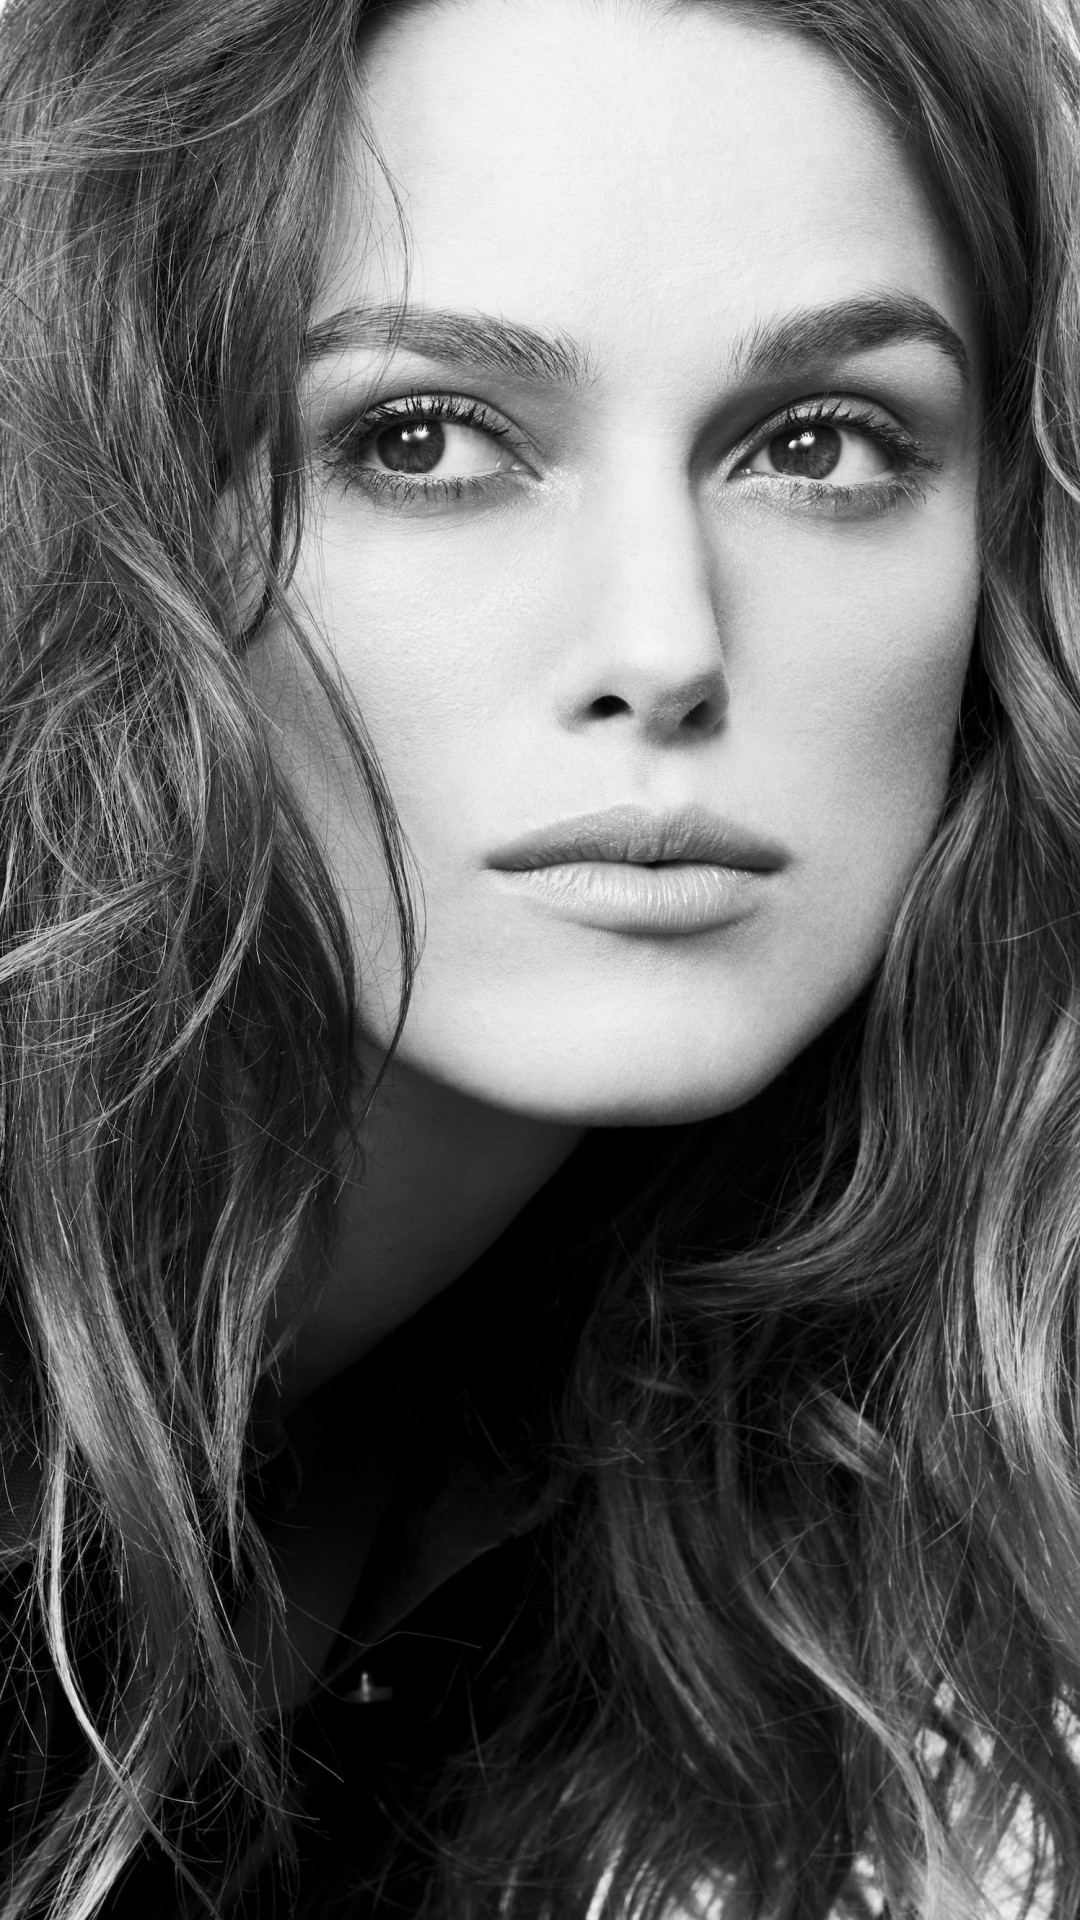 Keira Knightley in Black & White Wallpaper for SONY Xperia Z3